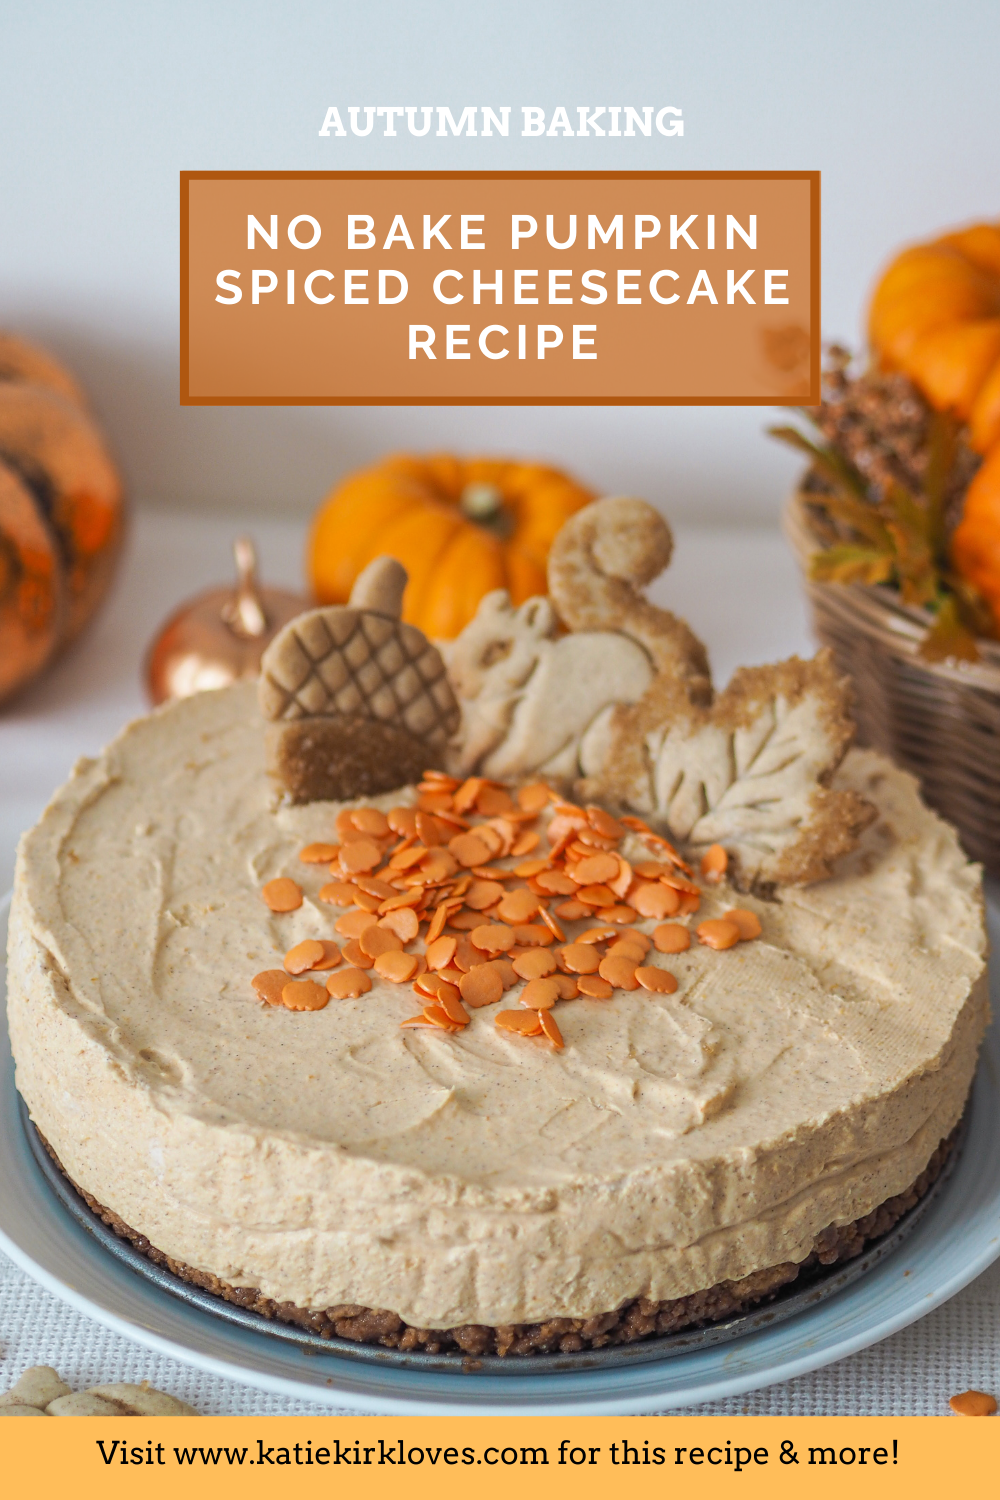 PIN IT!, Pumpkin Spiced Cheesecake Recipe, No Bake Cheesecake, Autumn Cheesecake, Fall Cheesecake, Pumpkin Spice Cheesecake, Katie Kirk Loves, UK Food Blogger, UK Recipe, Delicious Creamy Cheesecake